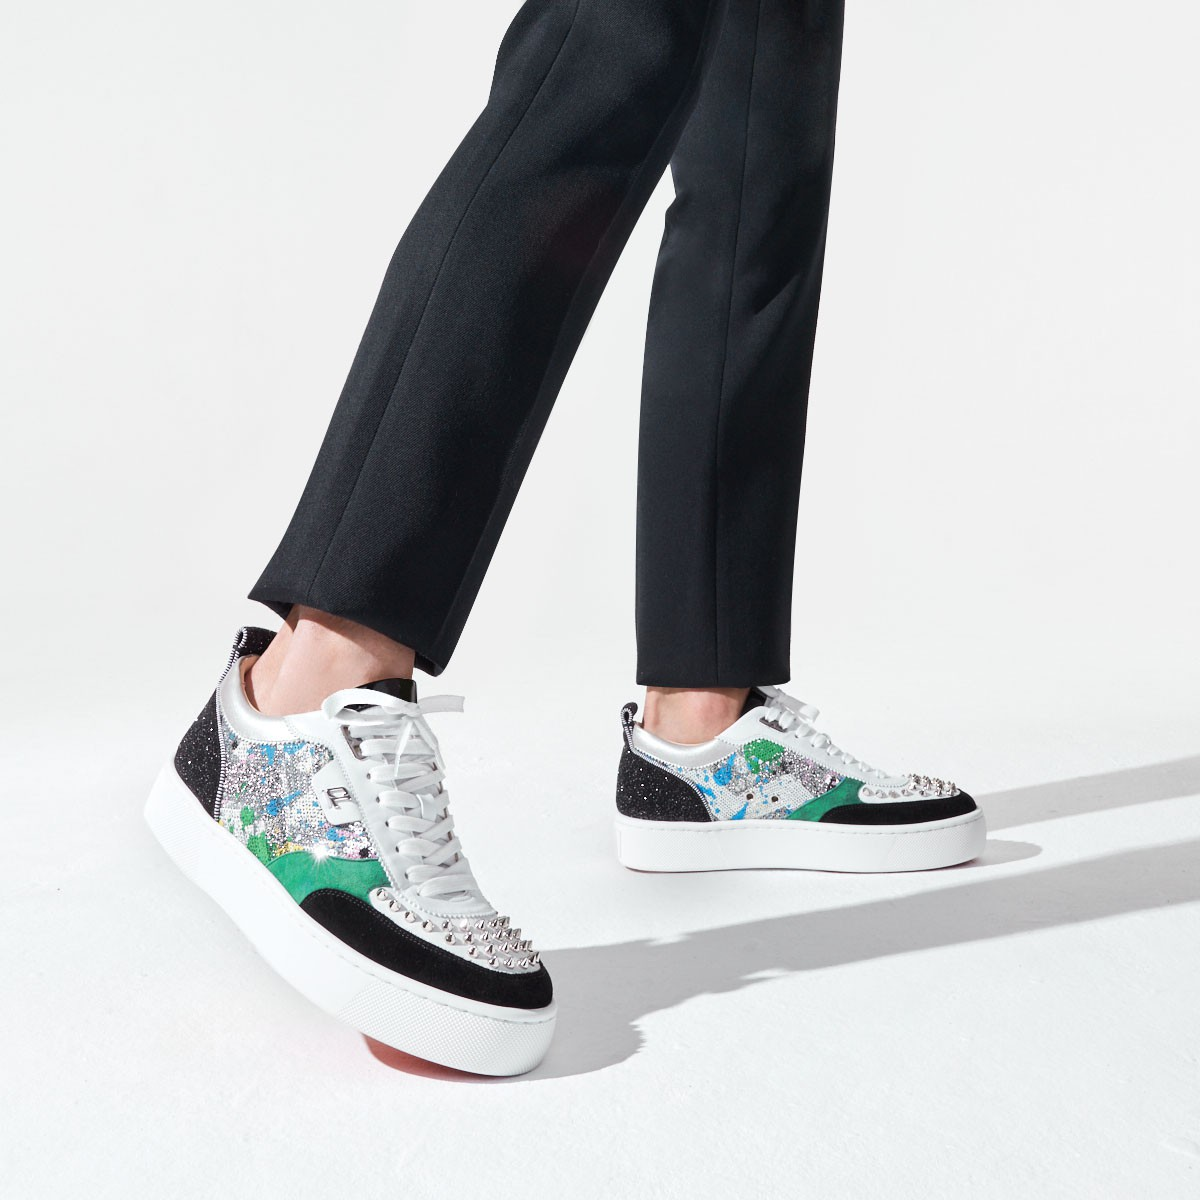 メンズシューズ - Happyrui Spikes - Christian Louboutin